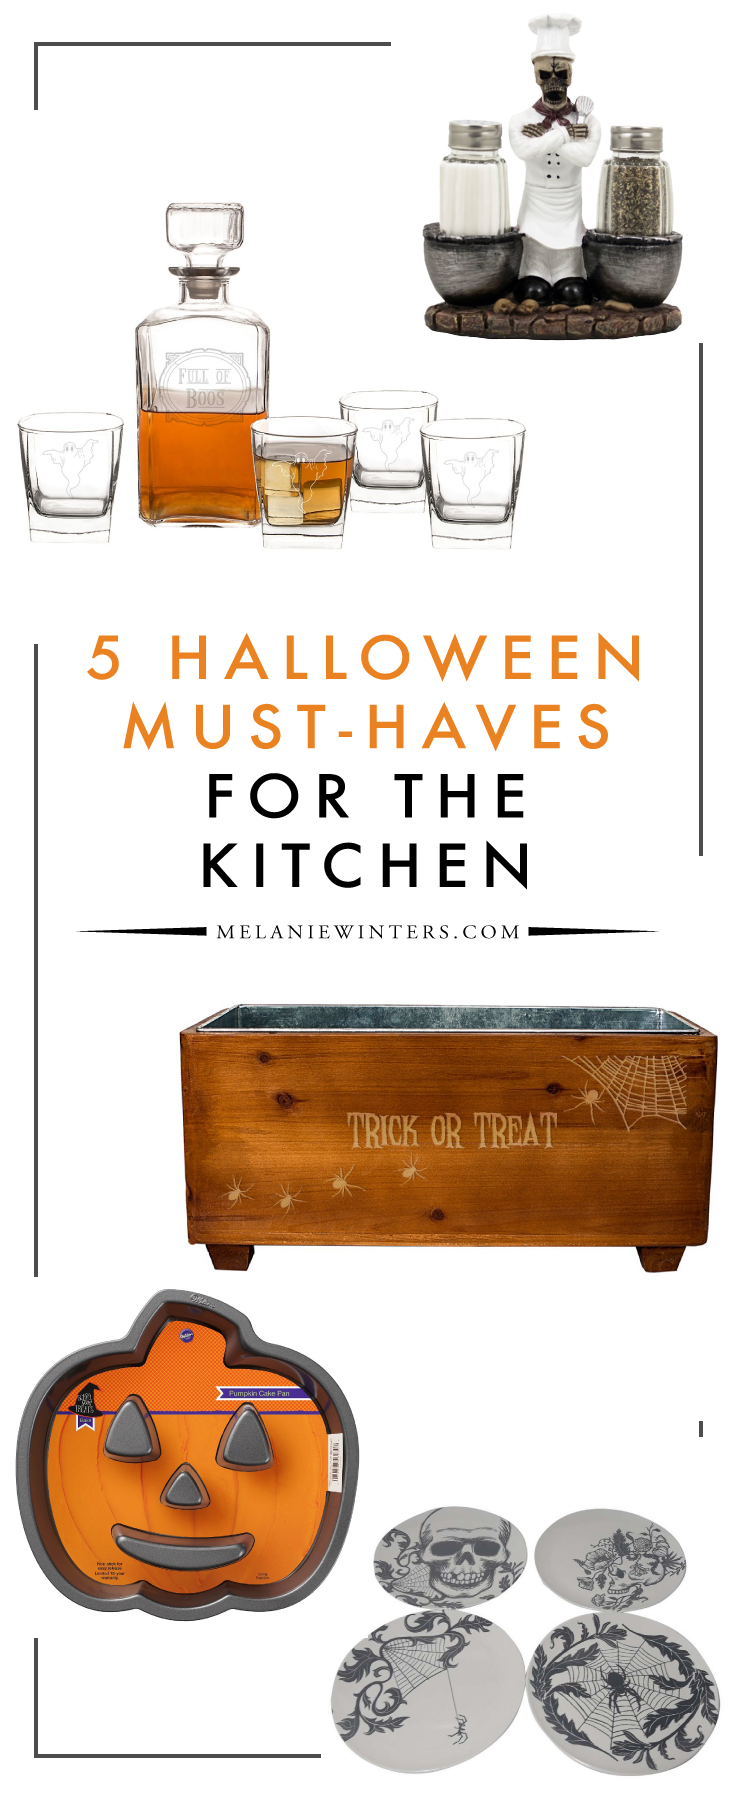 Take your Halloween game to the next level with these must-have items perfect for entertaining!